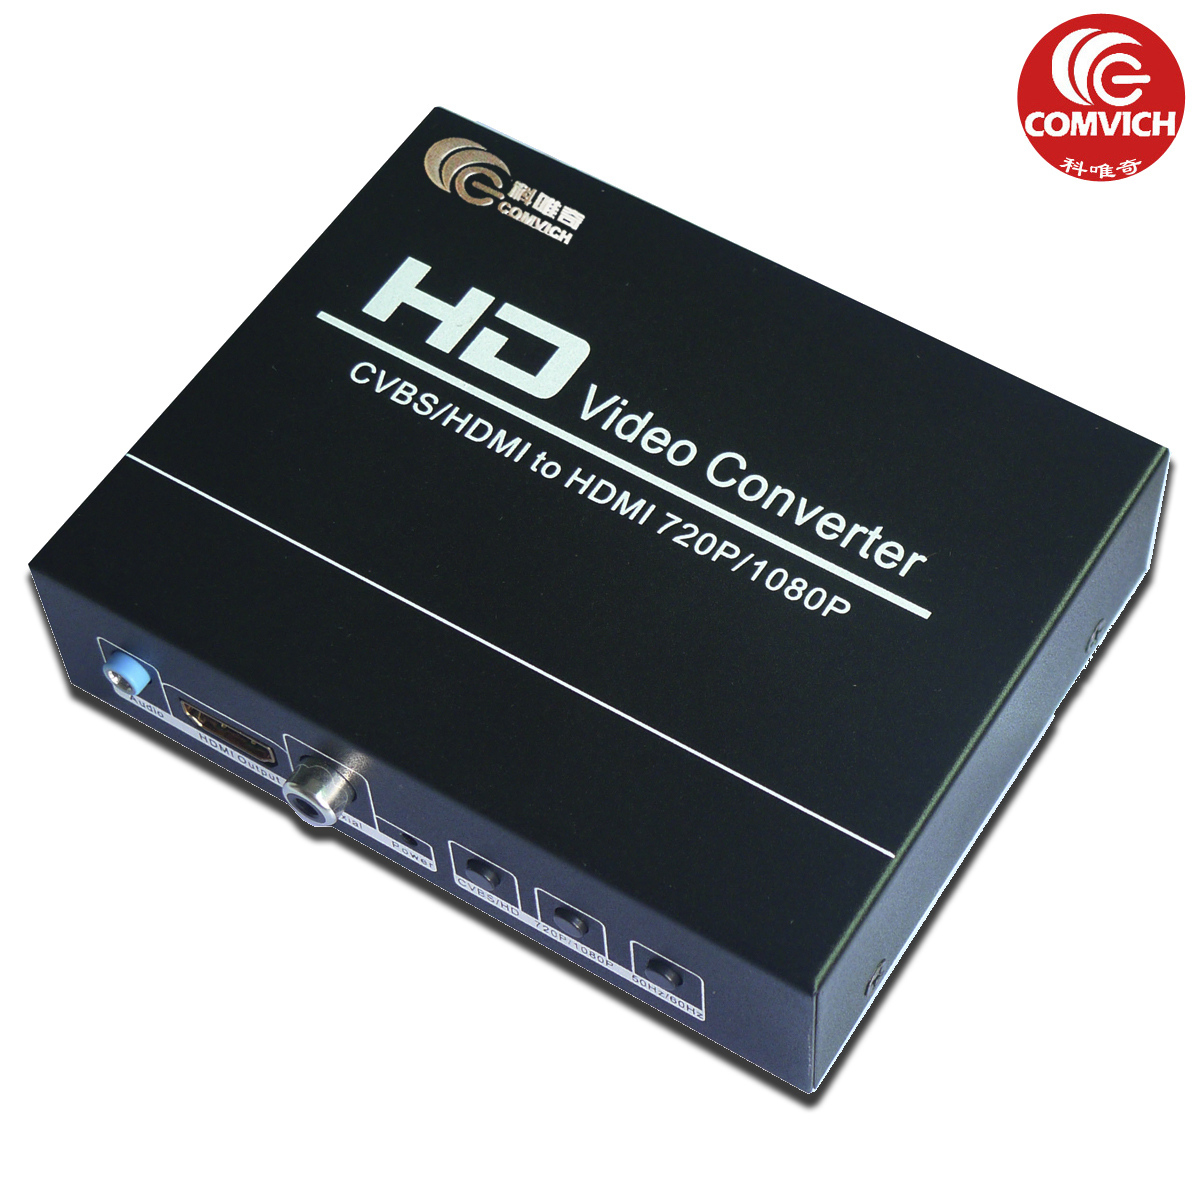 Branch only odd av + hdmi to hdmi converter hdmi turn cvbs to hdmi cable is 720 times 1080 P